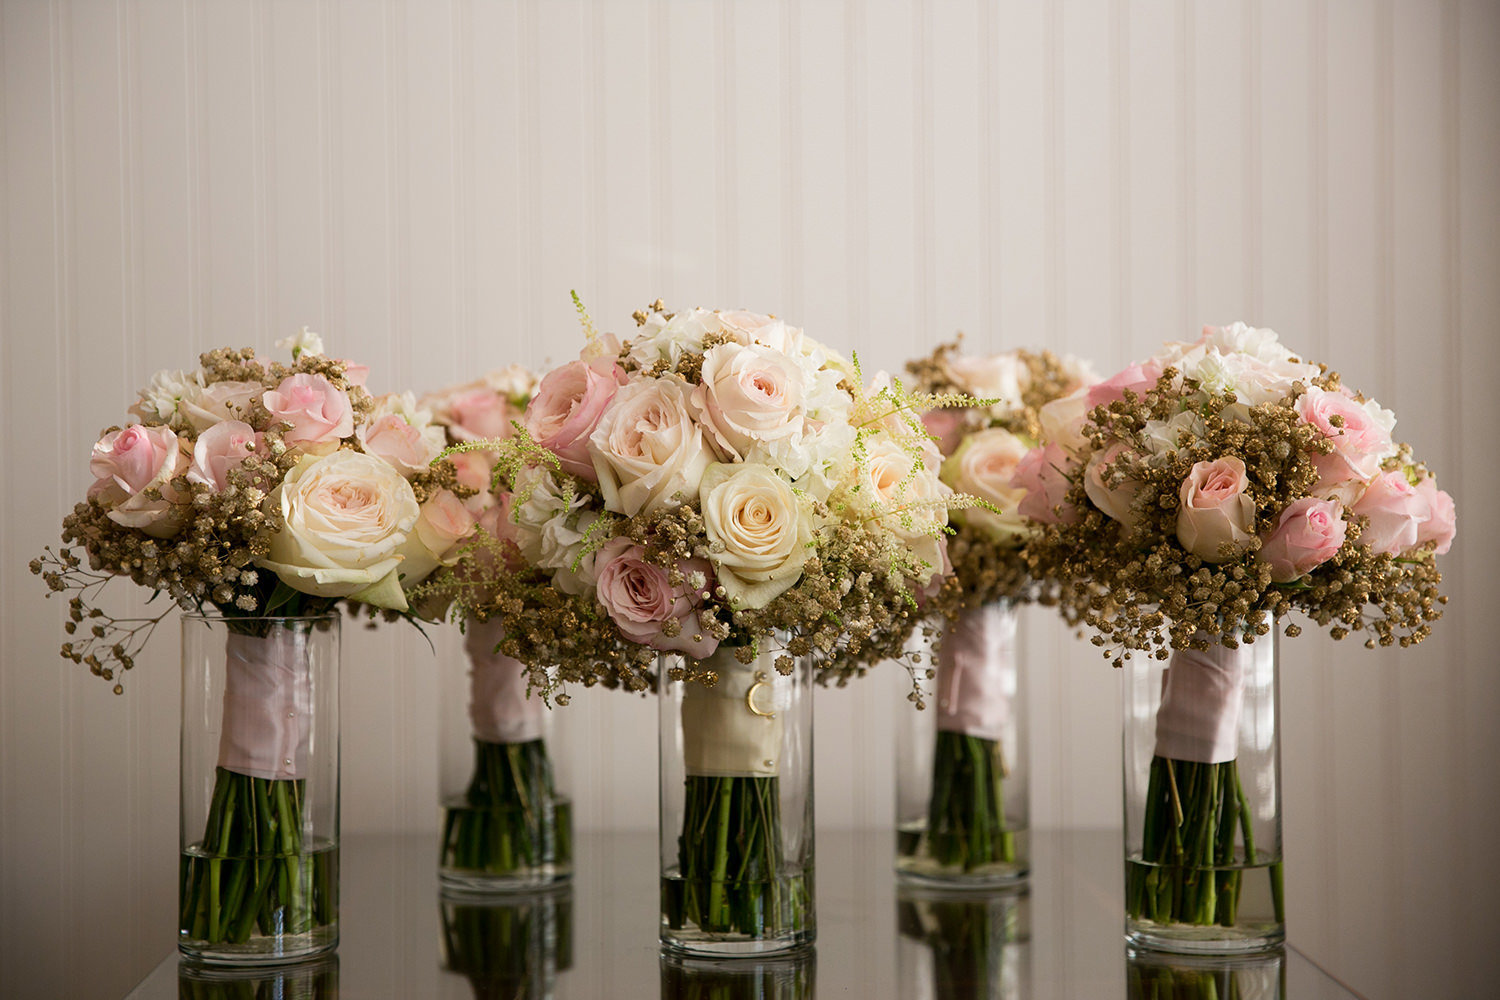 Bouquet detail photo with pink roses